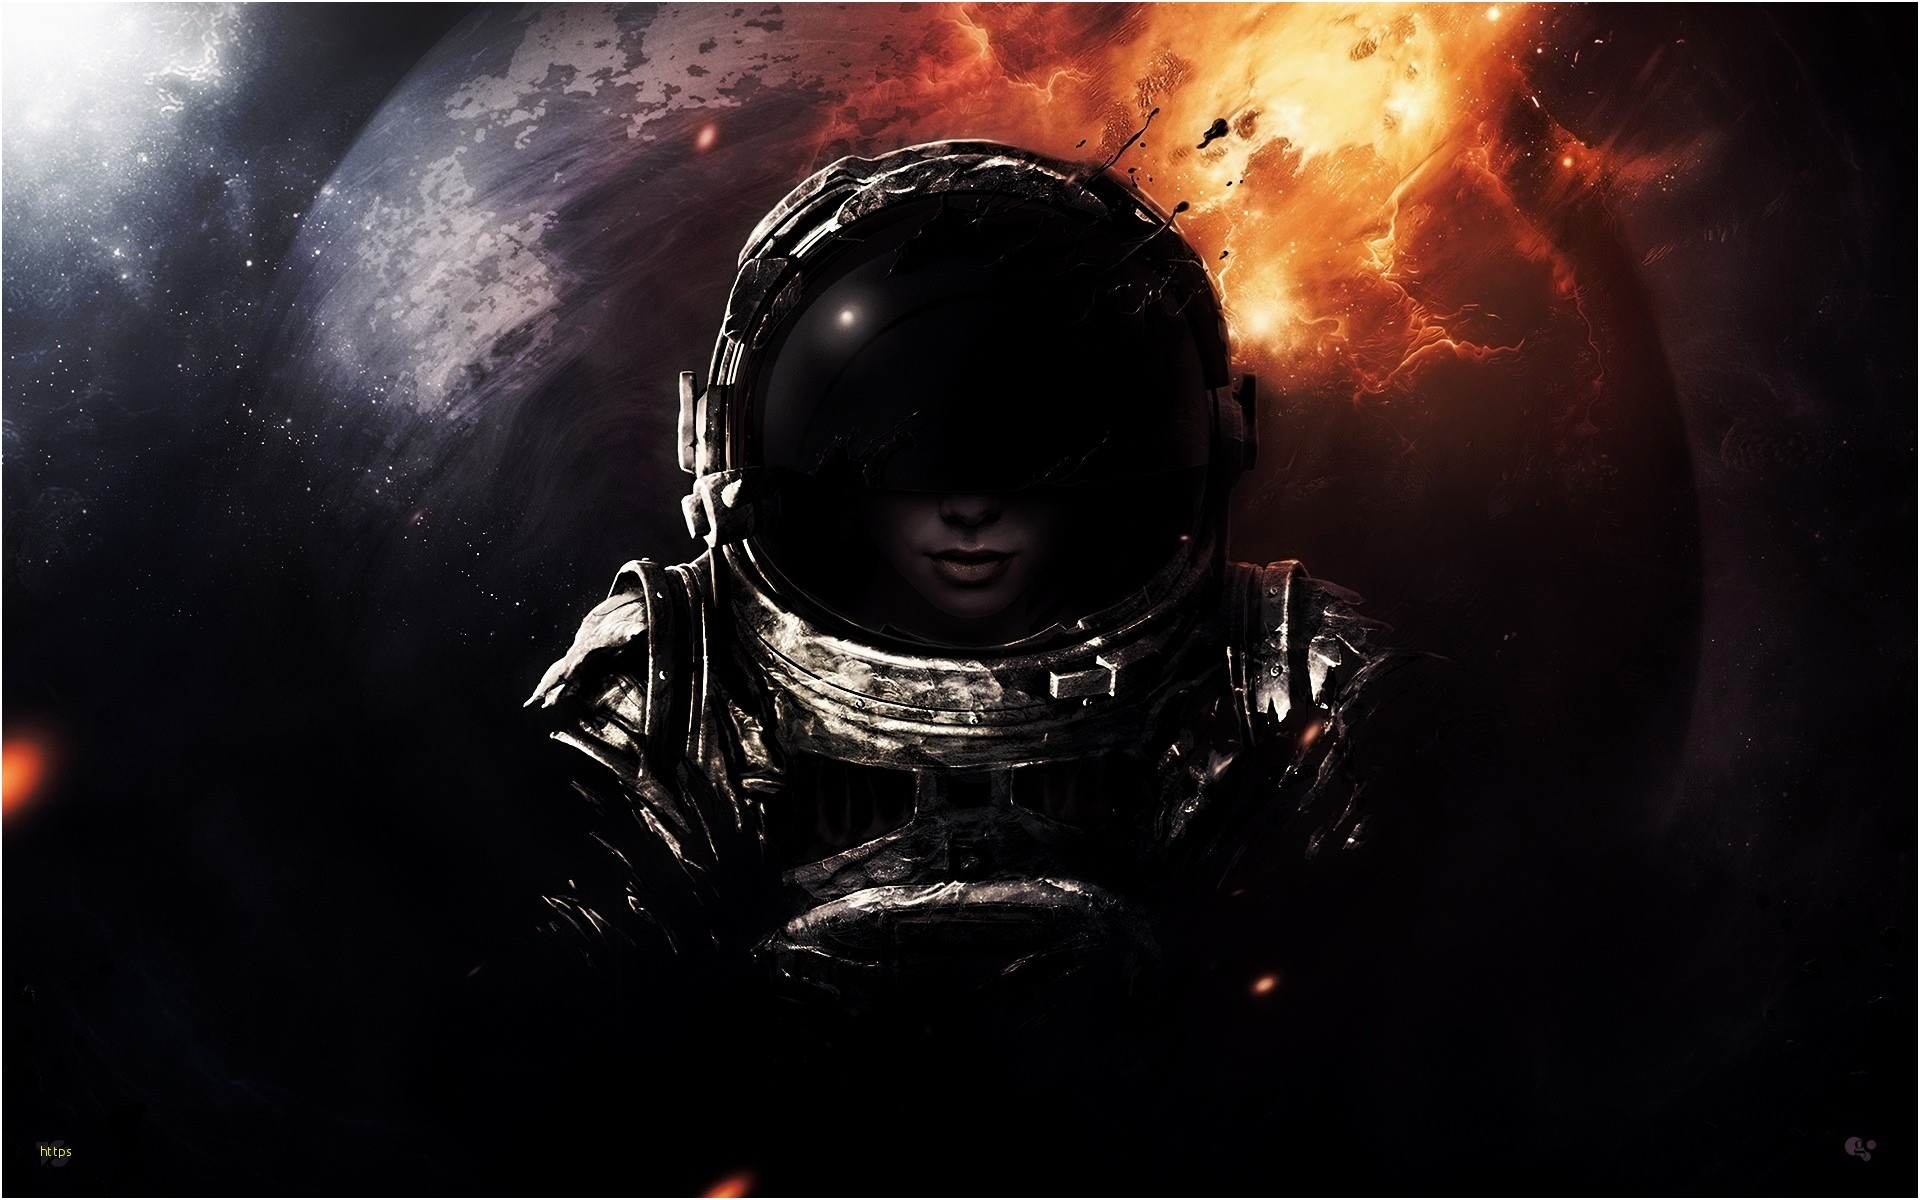 Res: 1920x1200, Astronaut Wallpaper Awesome astronaut Women Wallpapers Hd Desktop and Mobile